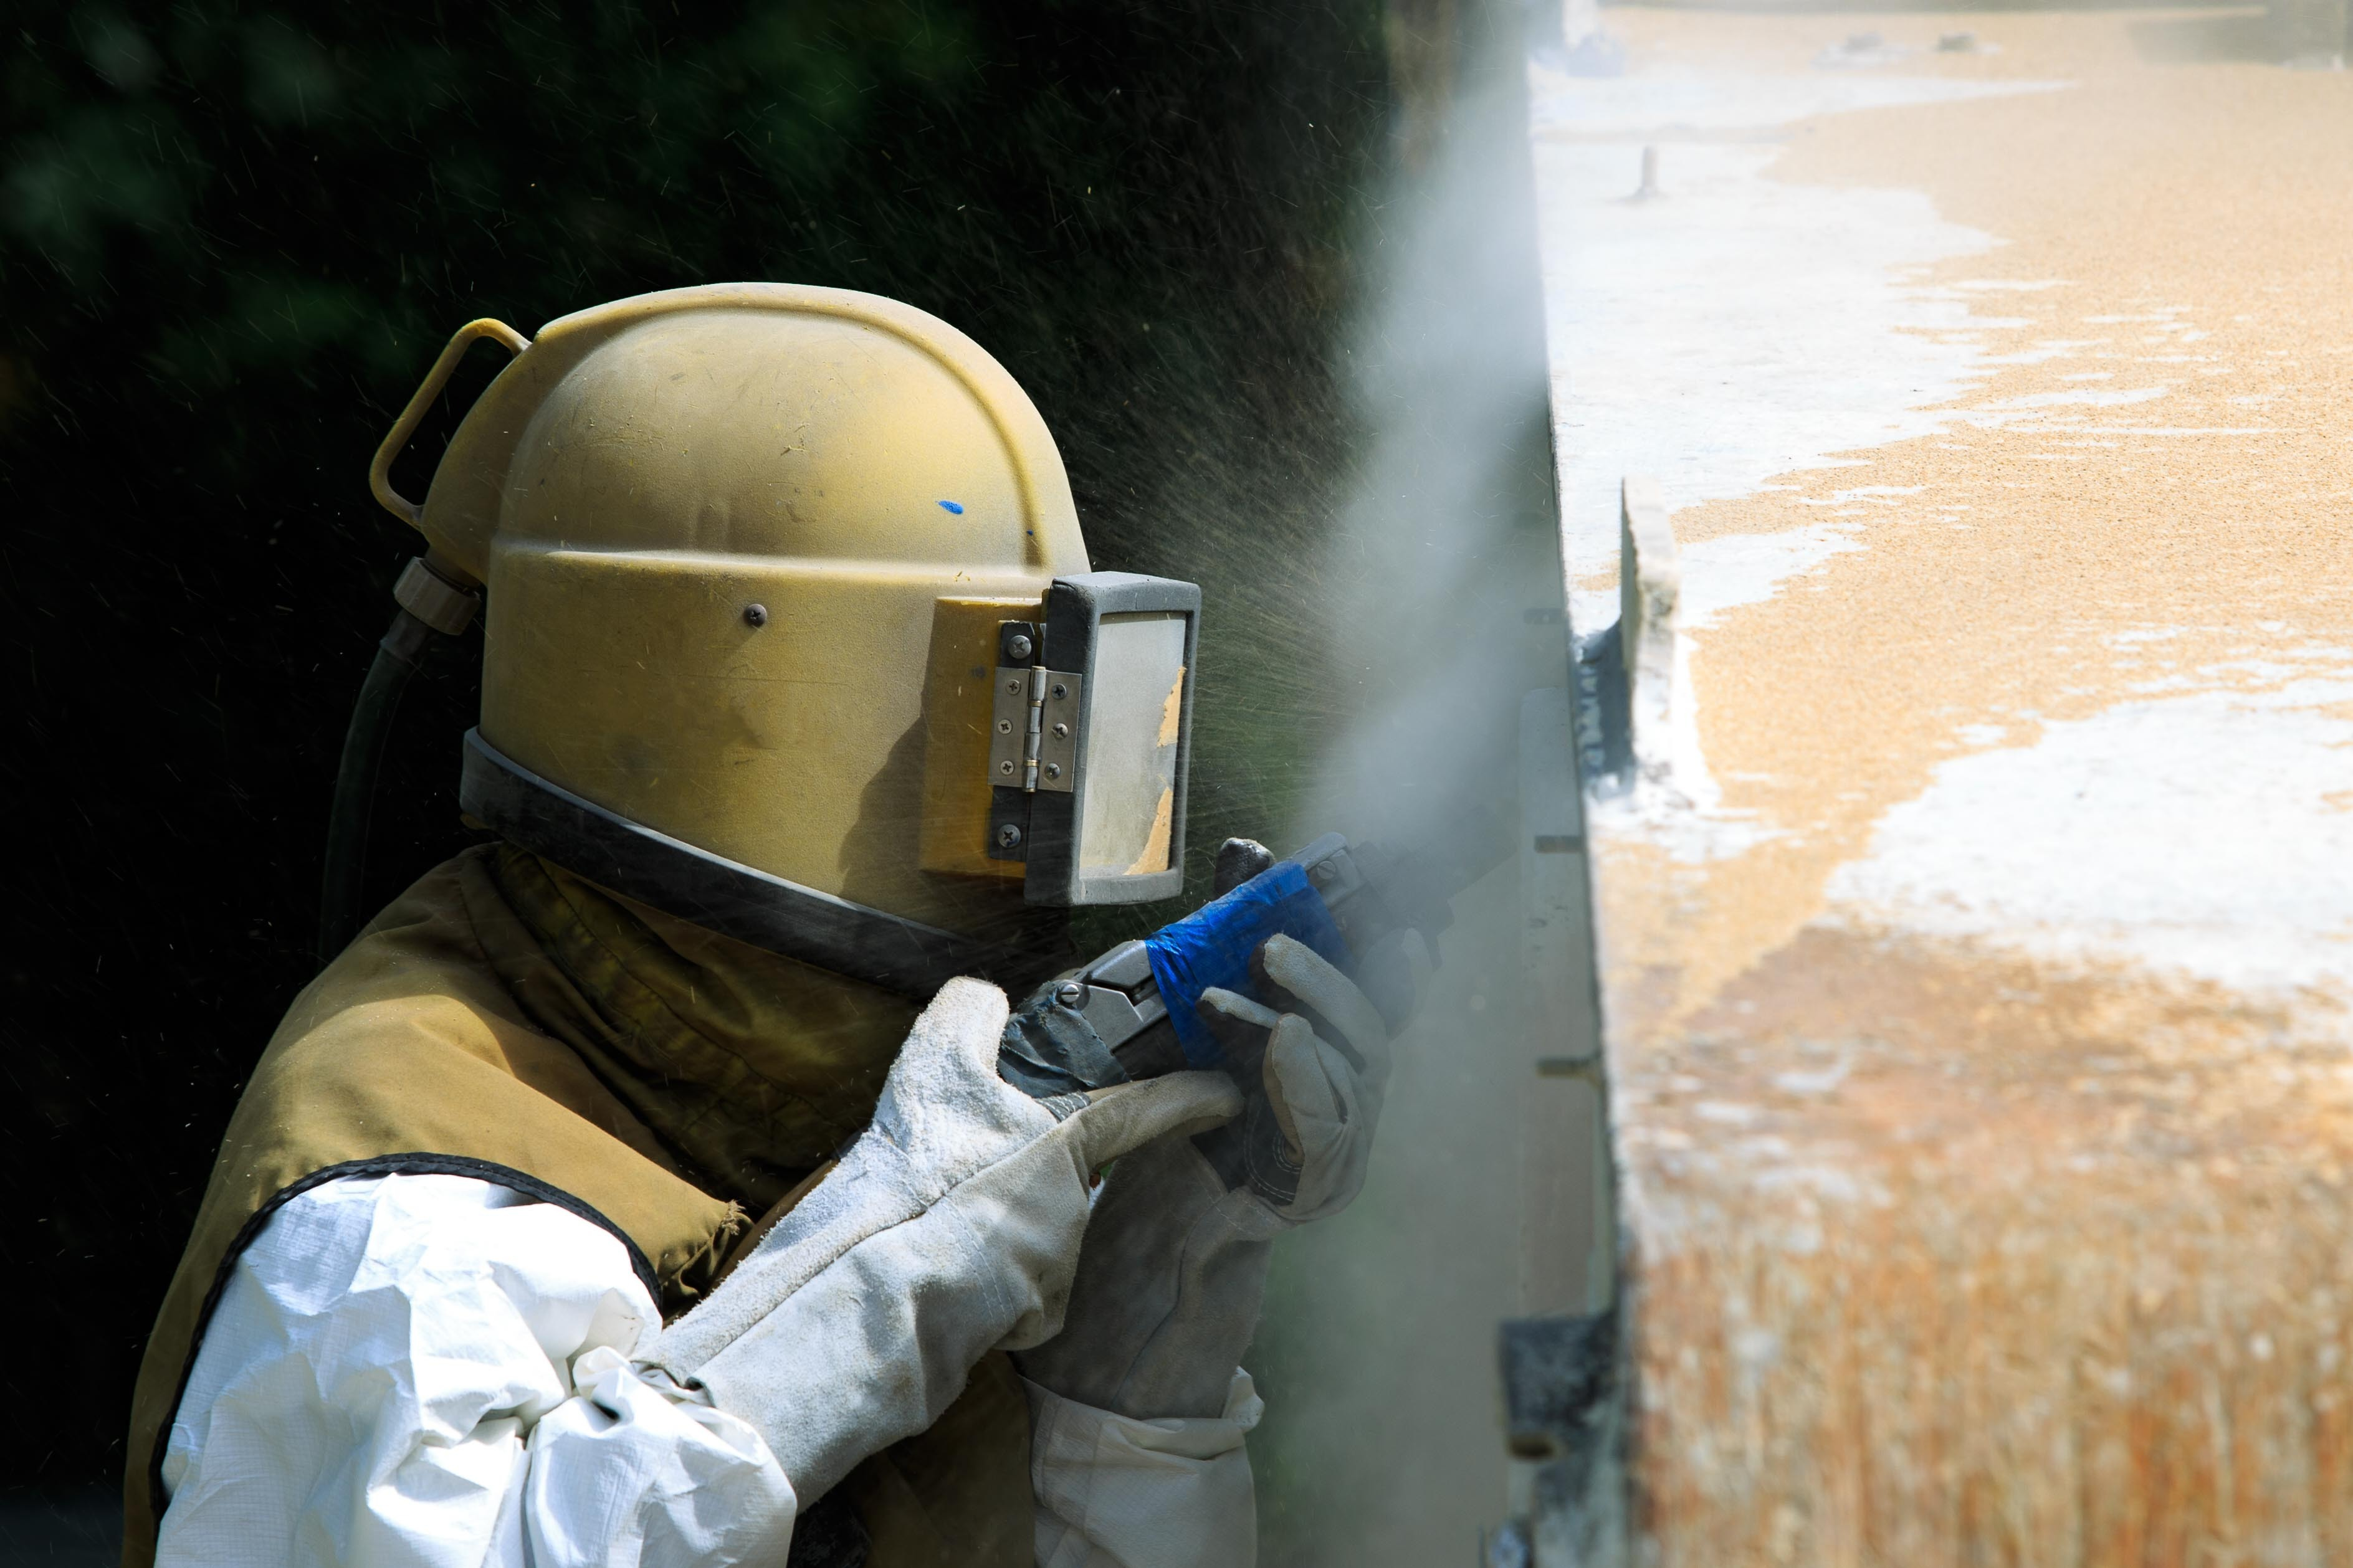 Eliminate clumsy exhaust systems and cumbersome PPE.